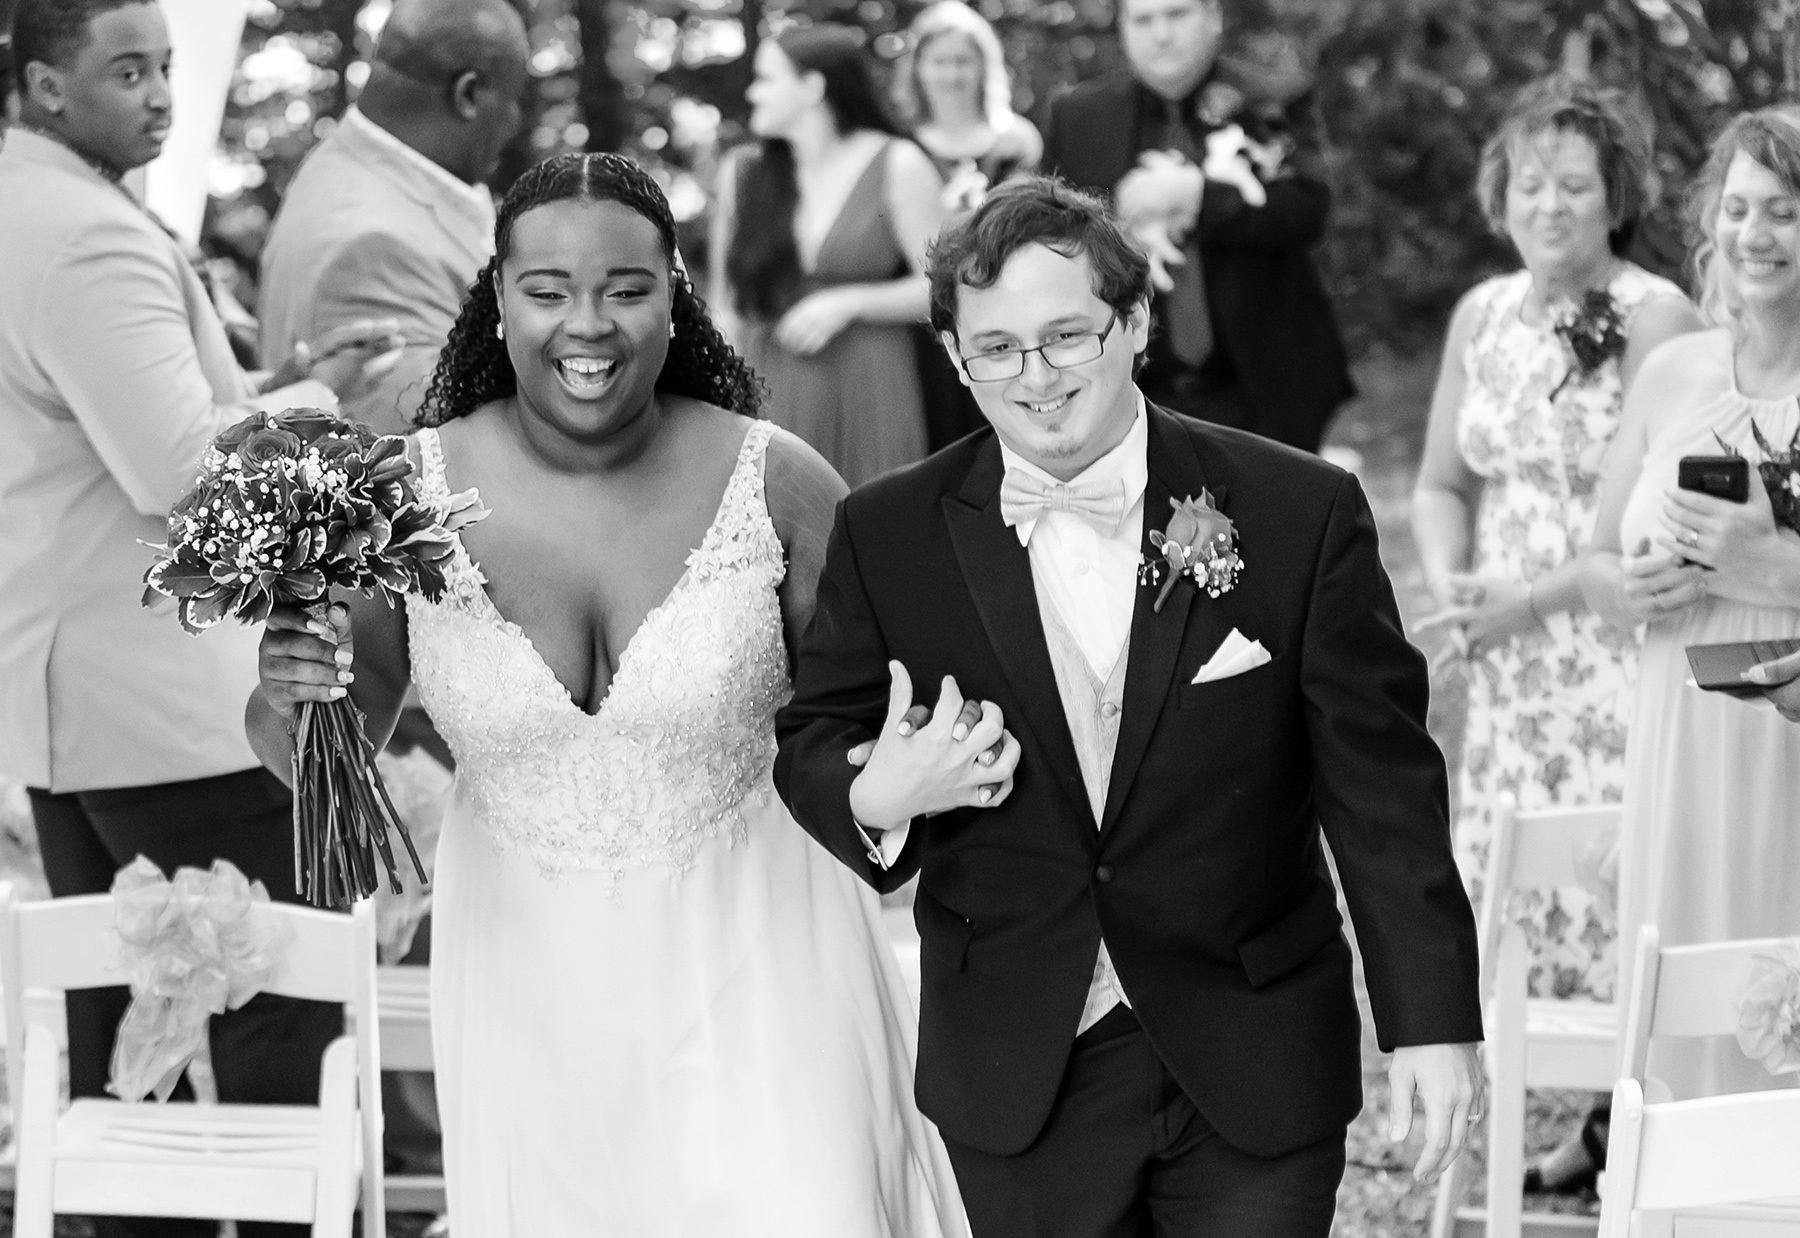 Planning For Your Backyard Wedding Images | The newlyweds celebrate together